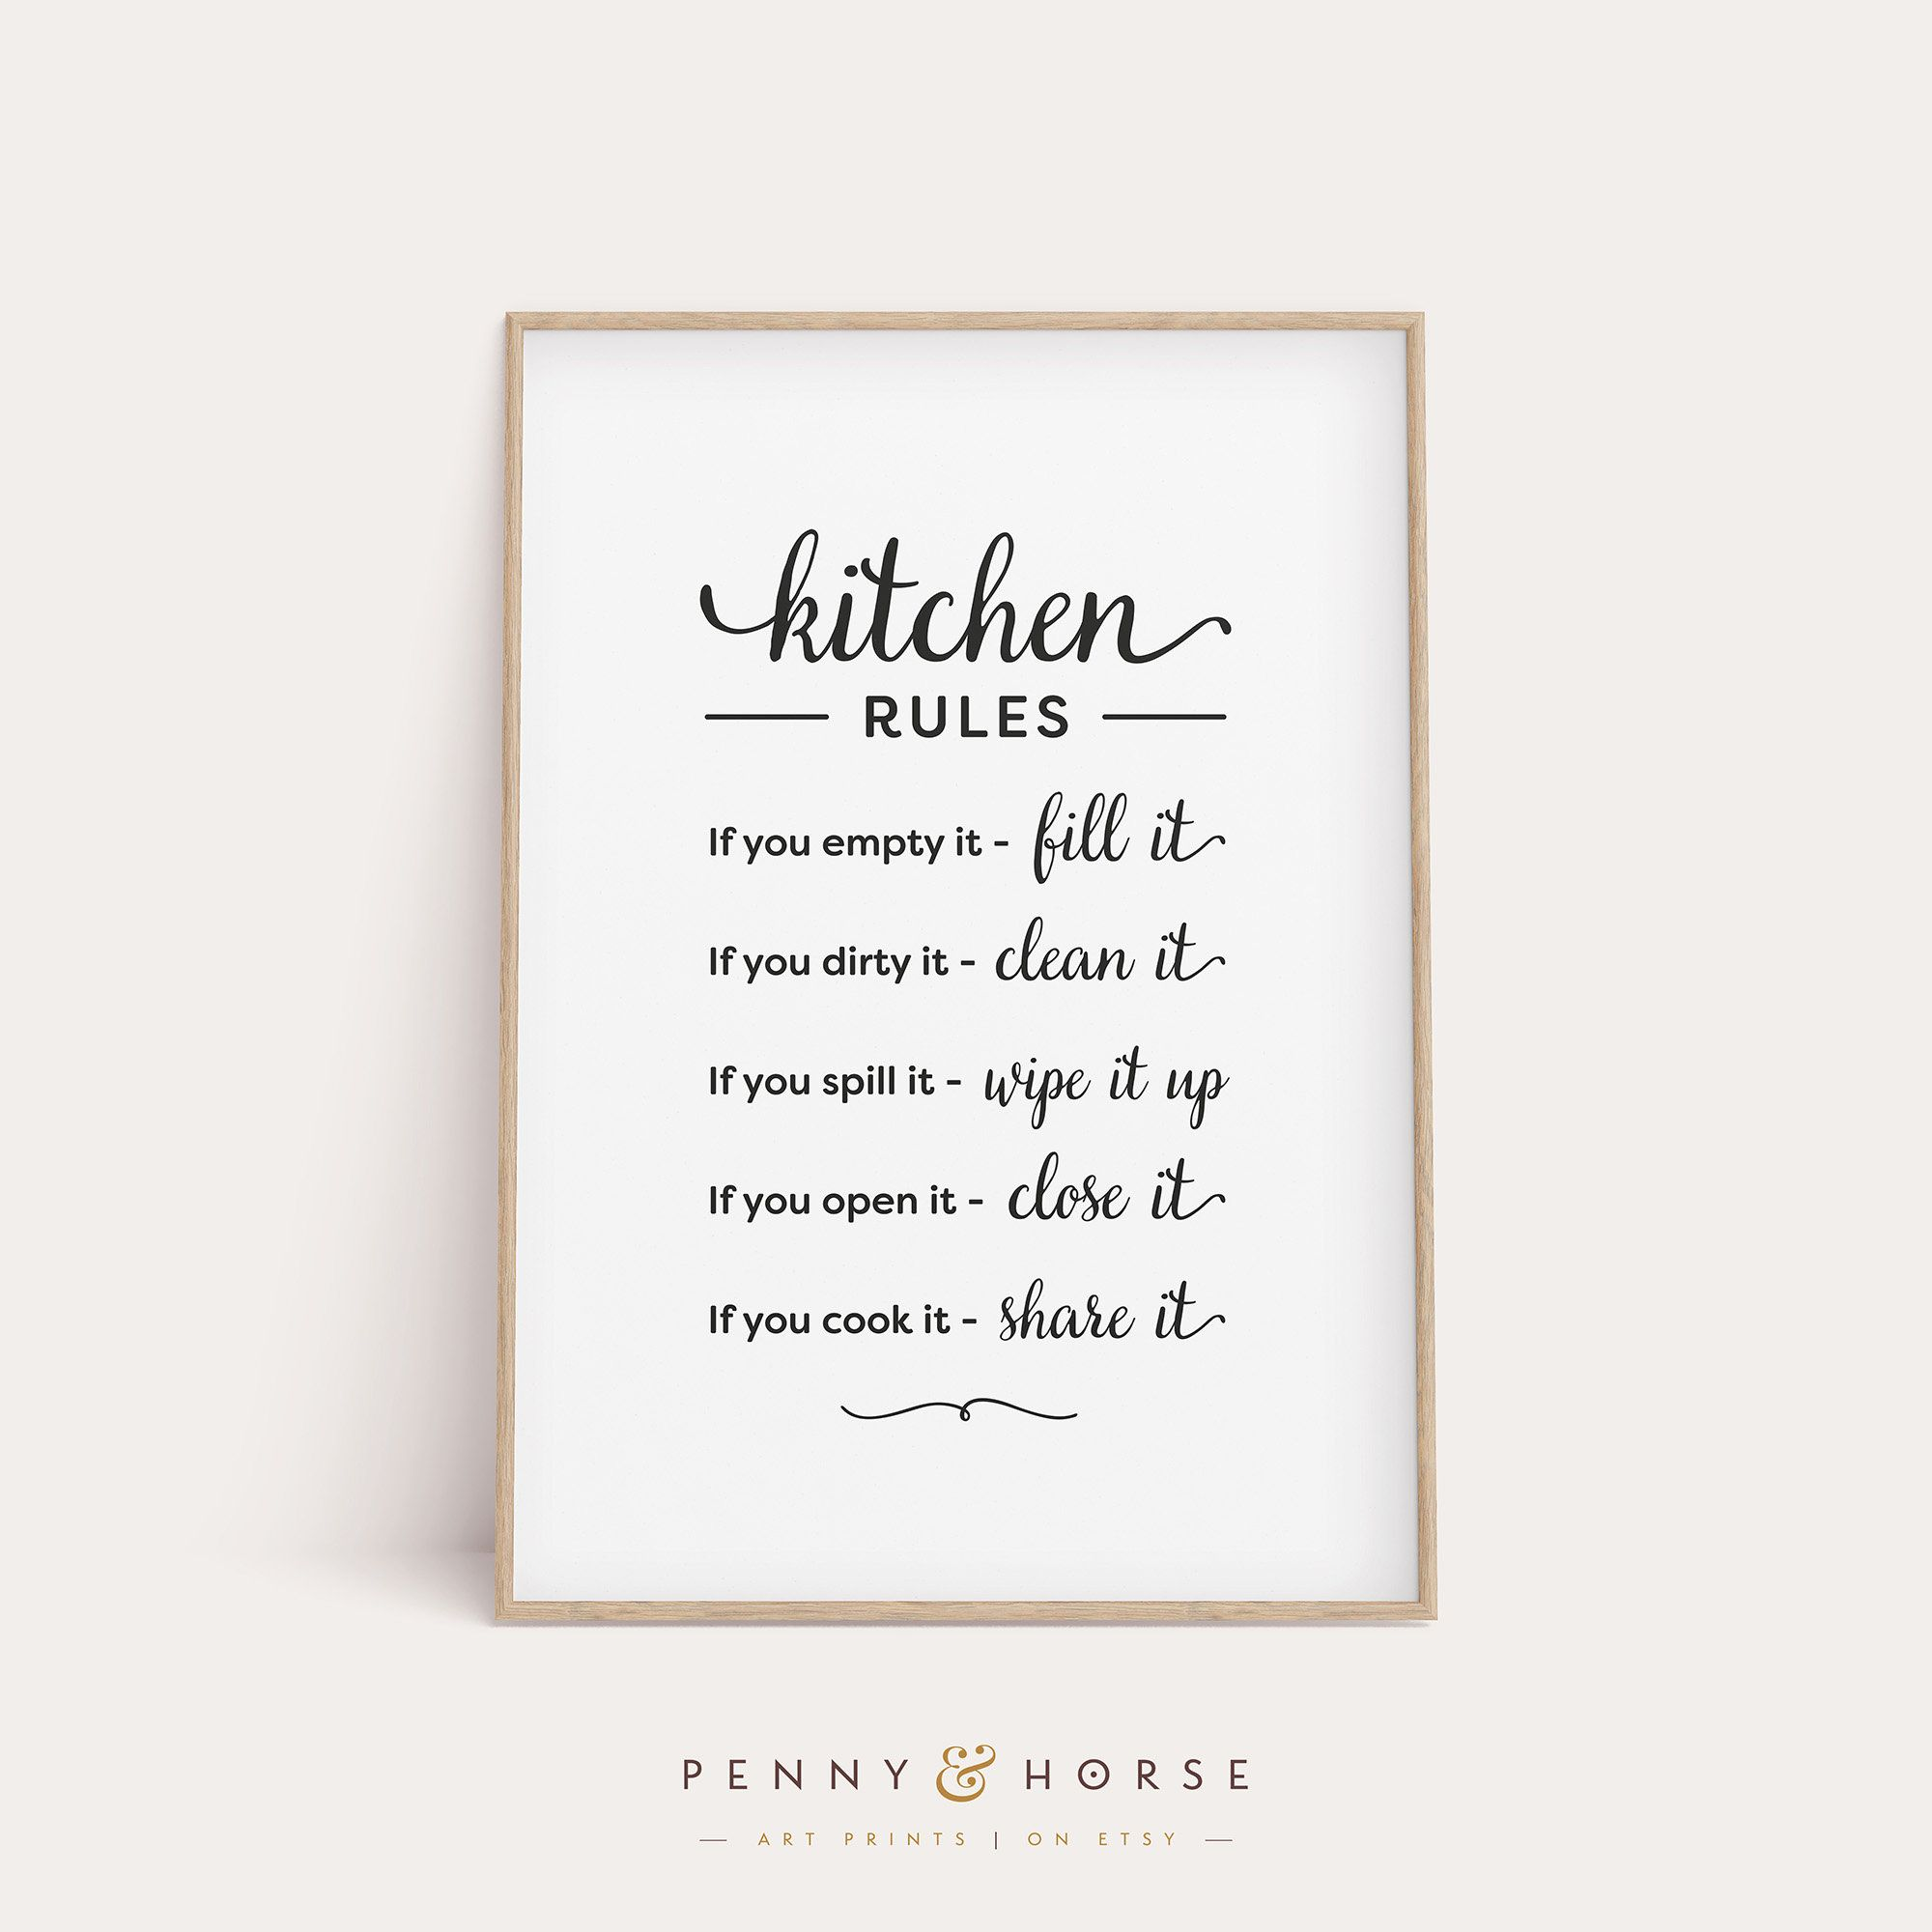 Kitchen Rules Sign Kitchen Wall Decor Printable Art Kitchen Rules Print Kitchen Gift Kitchen Poster Kitchen Wall Art Digital Download In 2020 Kitchen Rules Kitchen Rules Sign Wall Decor Printables